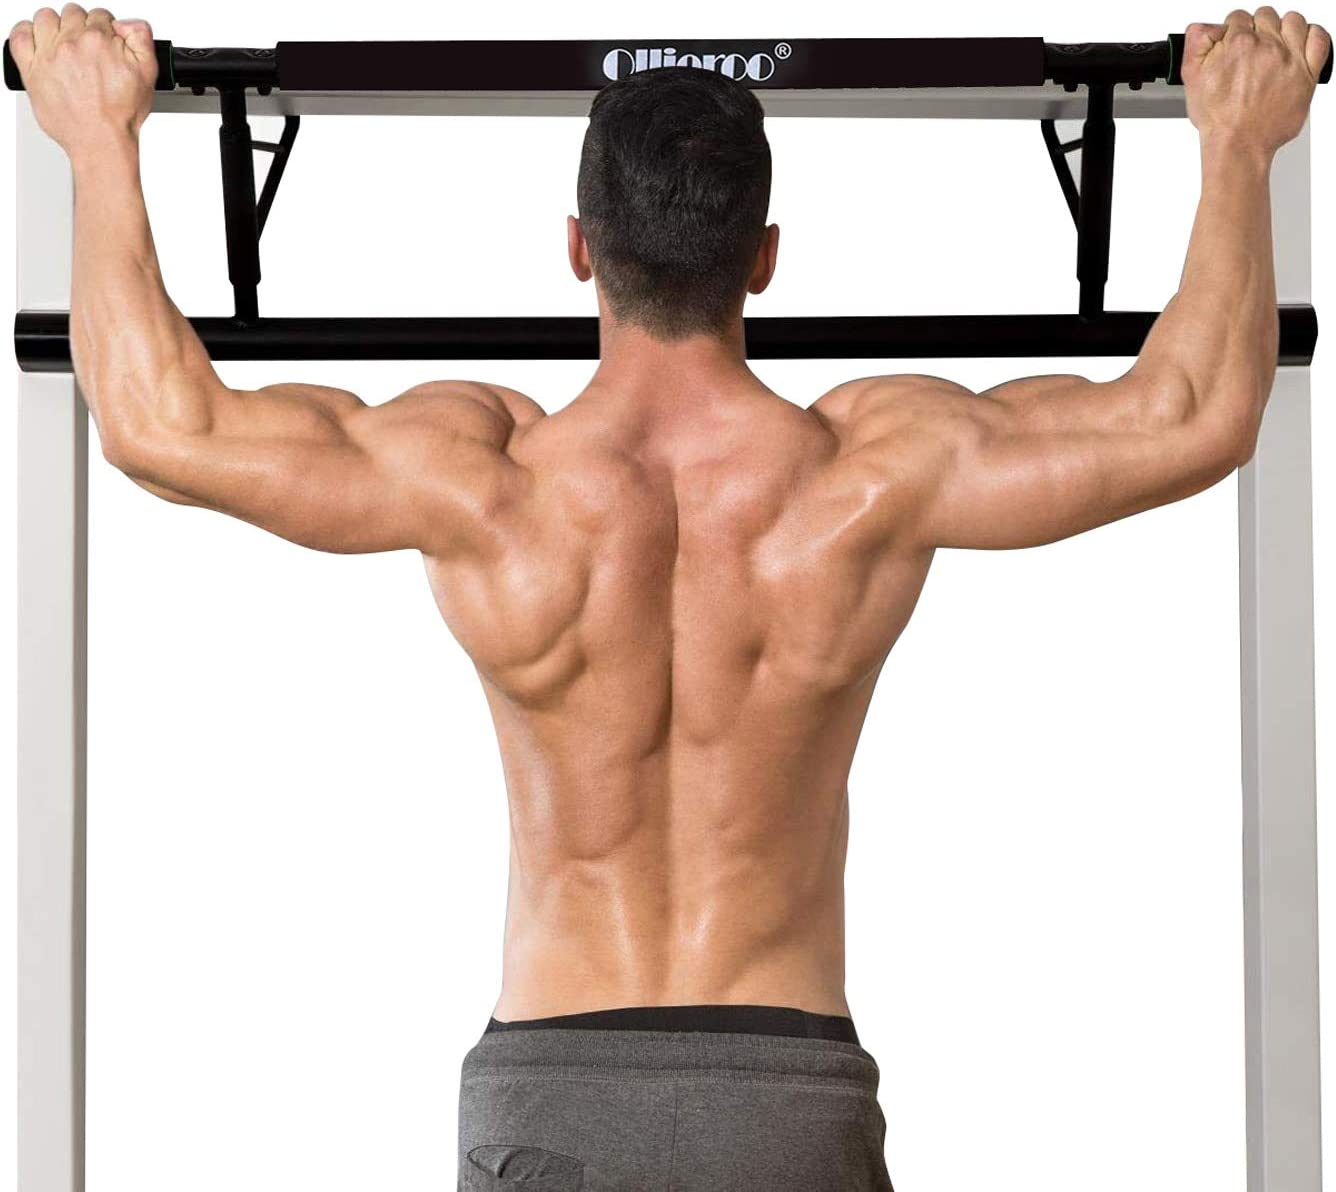 Ollieroo Pull Up Bars Gym Total Upper Body Workout Bar Pull Up Bar Doorway Chin Up Over Door Pull Up Bar Strength Training Bars Multi-Grip Trainer Workout for Home Gym